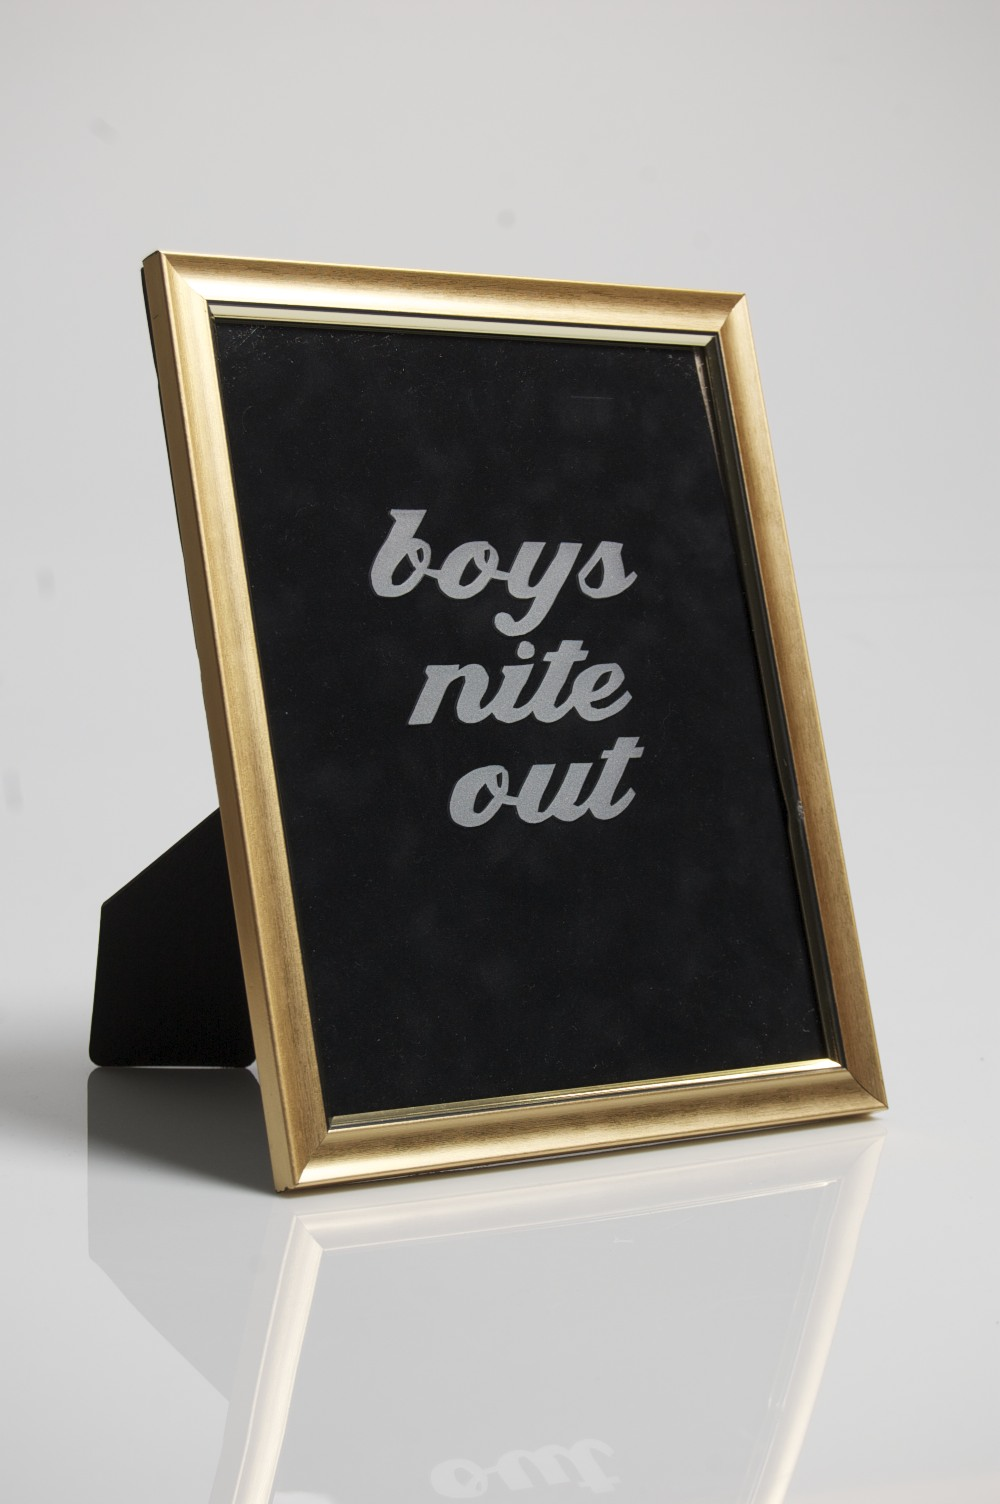 boys nite out